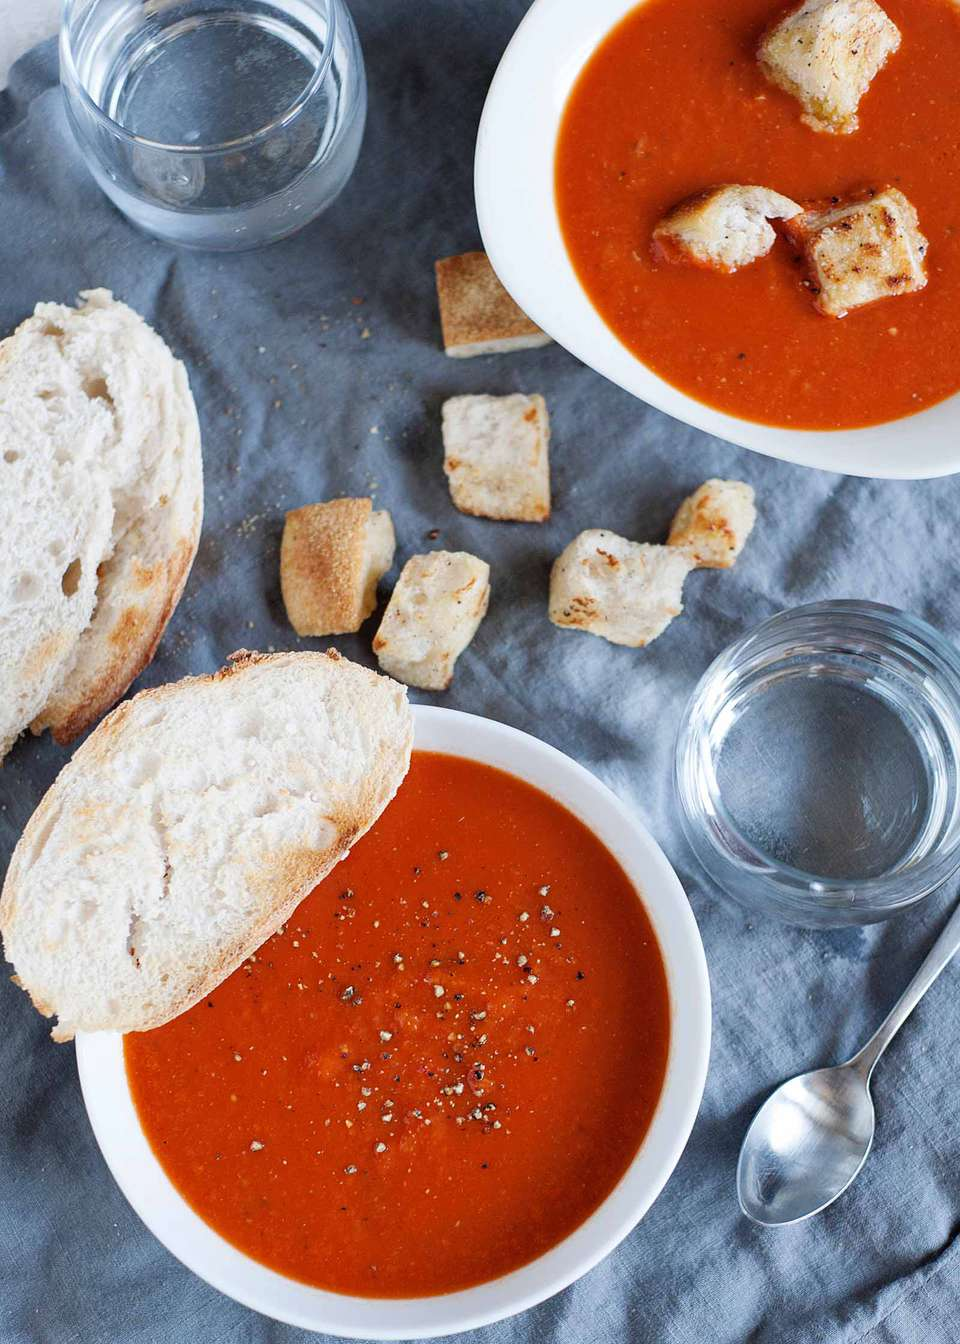 Easy Homemade Tomato Soup - tomato soup in a white bowl with a piece of bread, and pieces of bread crumbs on the table cloth